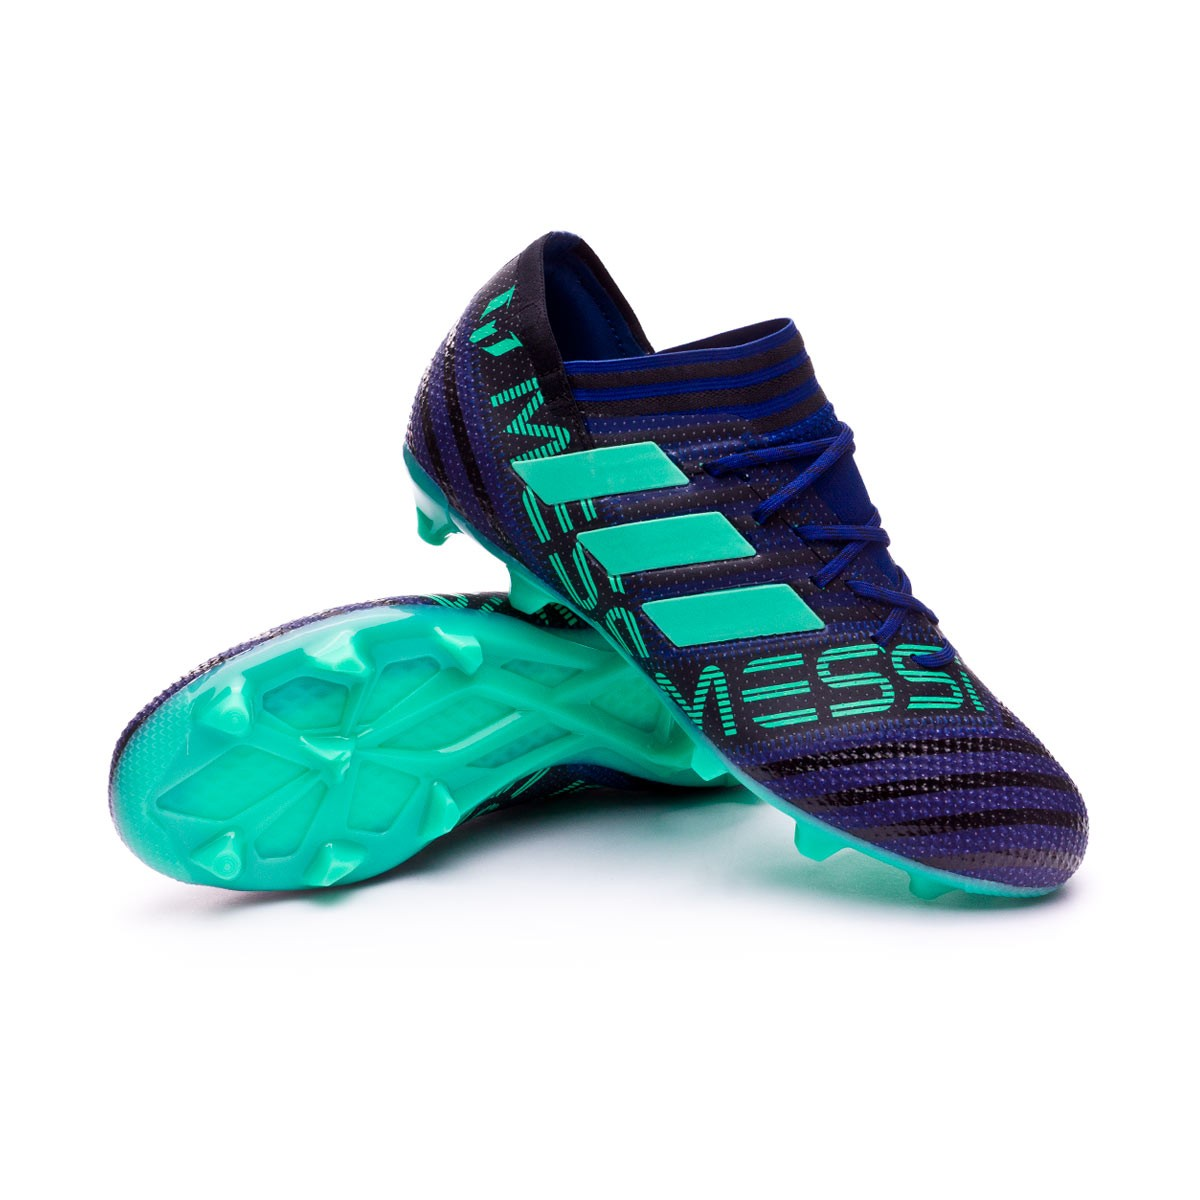 best loved c3e20 81d9f Zapatos de fútbol adidas Nemeziz Messi 17.1 FG Niño Unity ink-Hi-res  green-Core Black - Soloporteros es ahora Fútbol Emotion